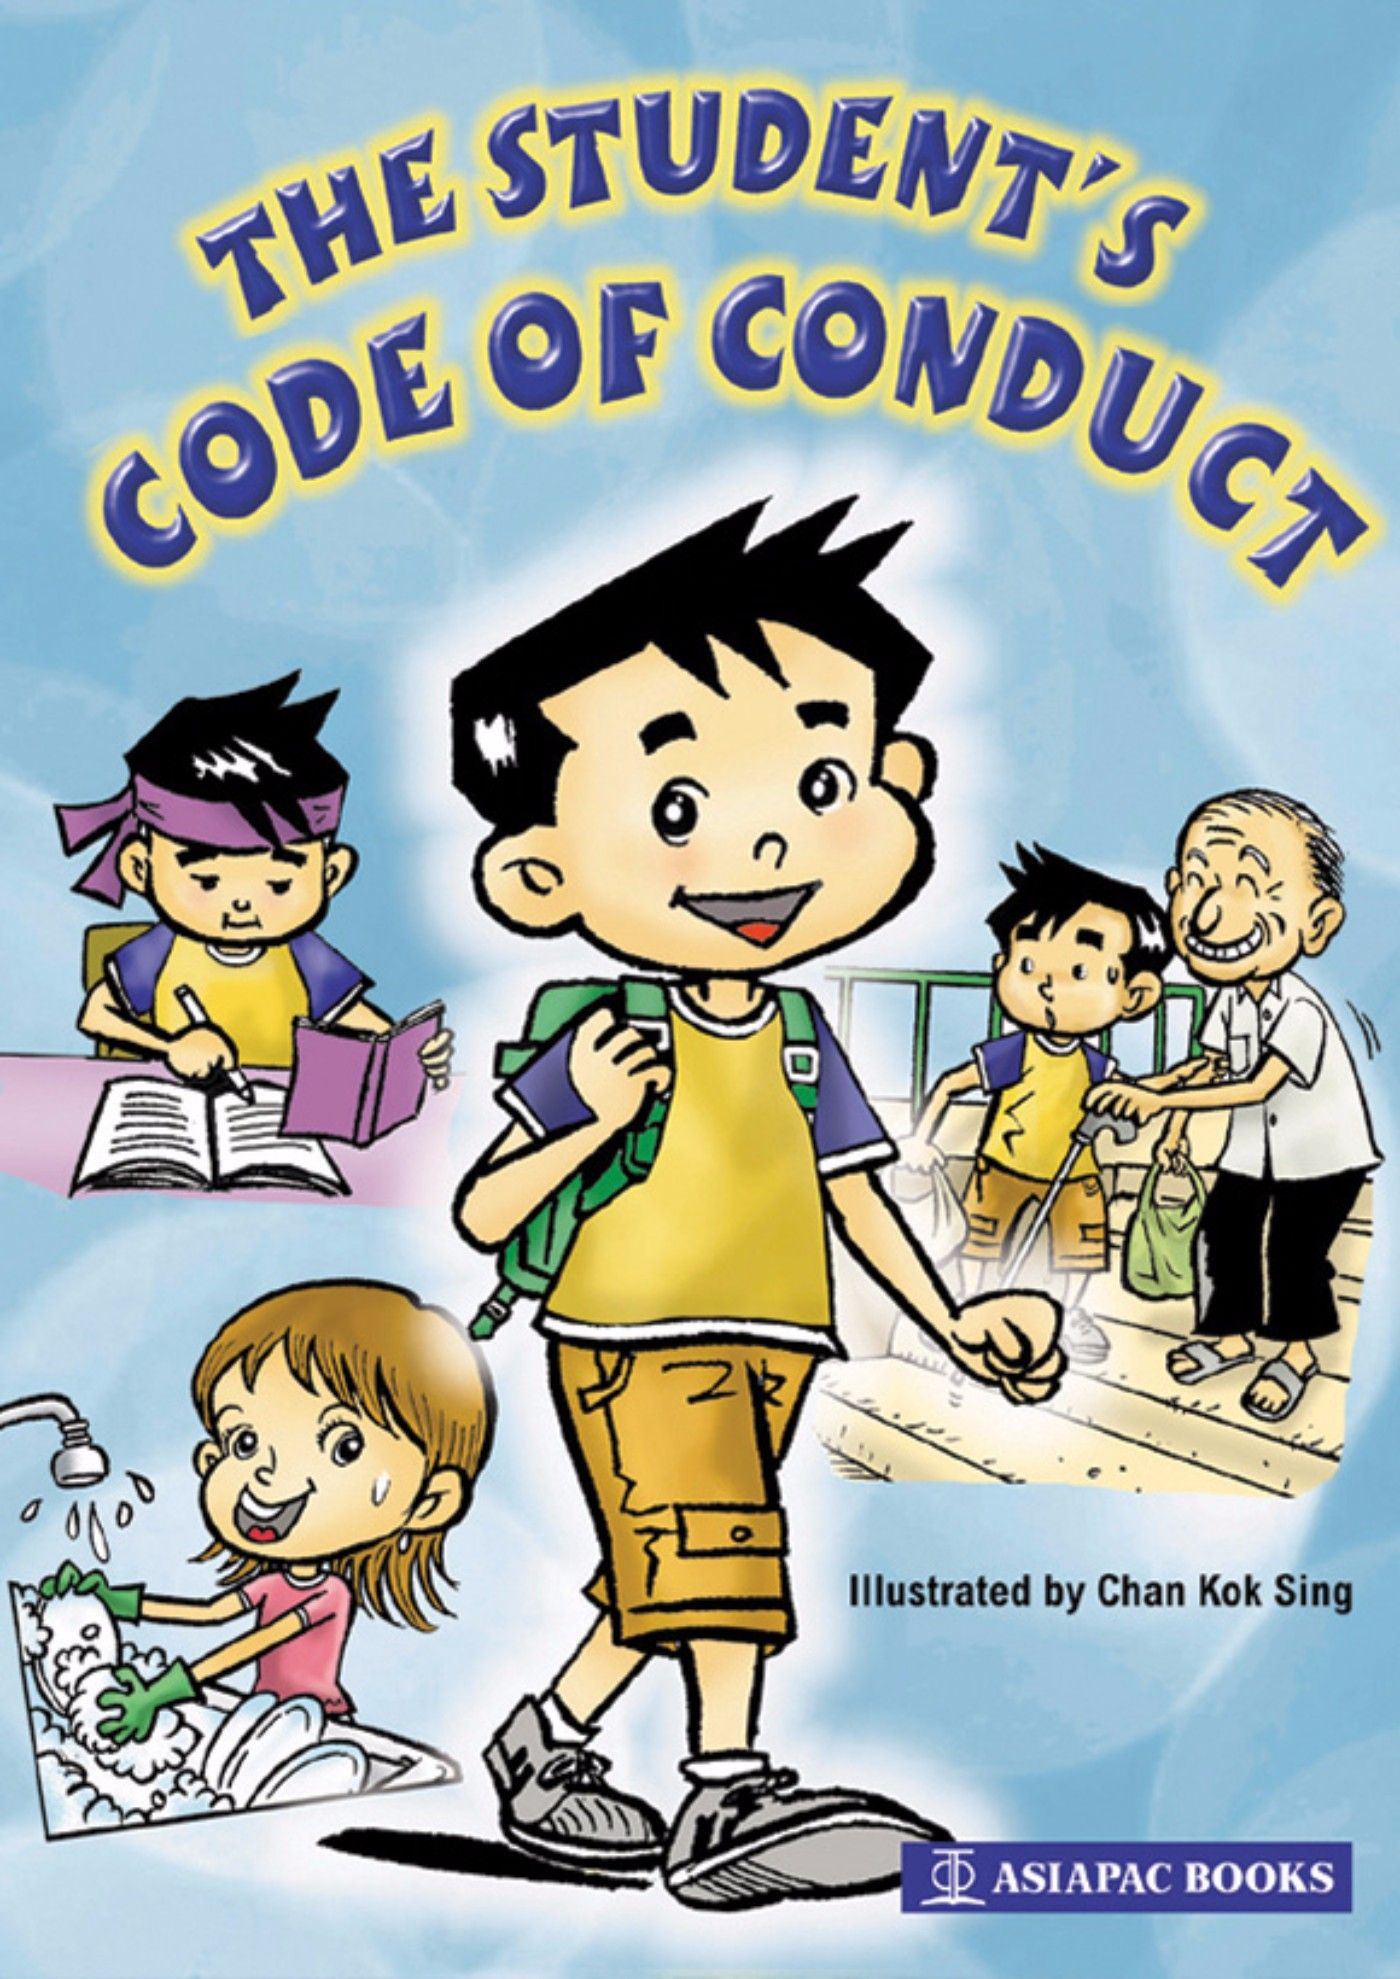 The Student's Code of Conduct | Comics and Graphic Novels